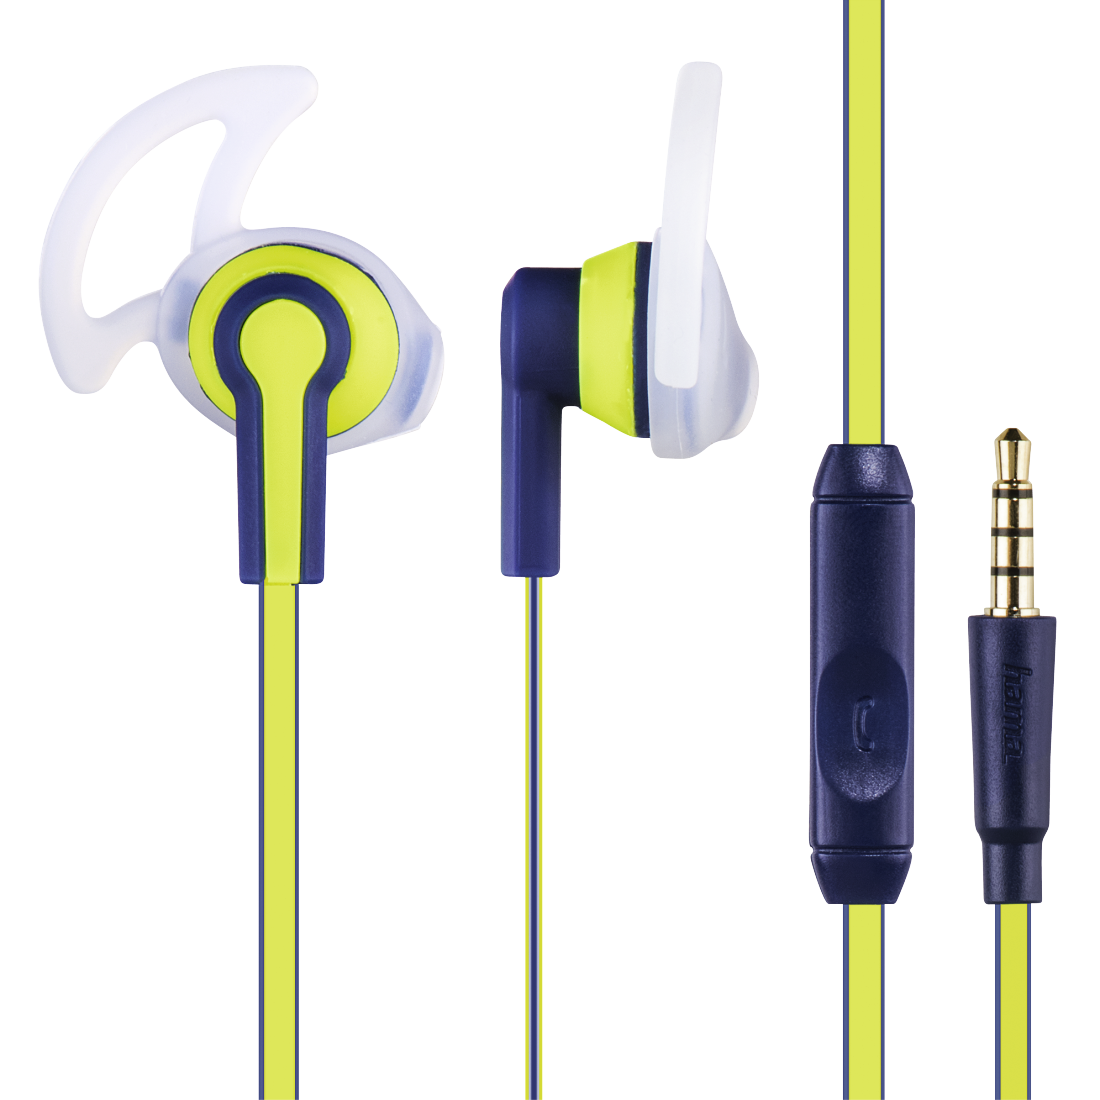 abx High-Res Image - Hama, Reflective Stereo Earphones, blue/yellow